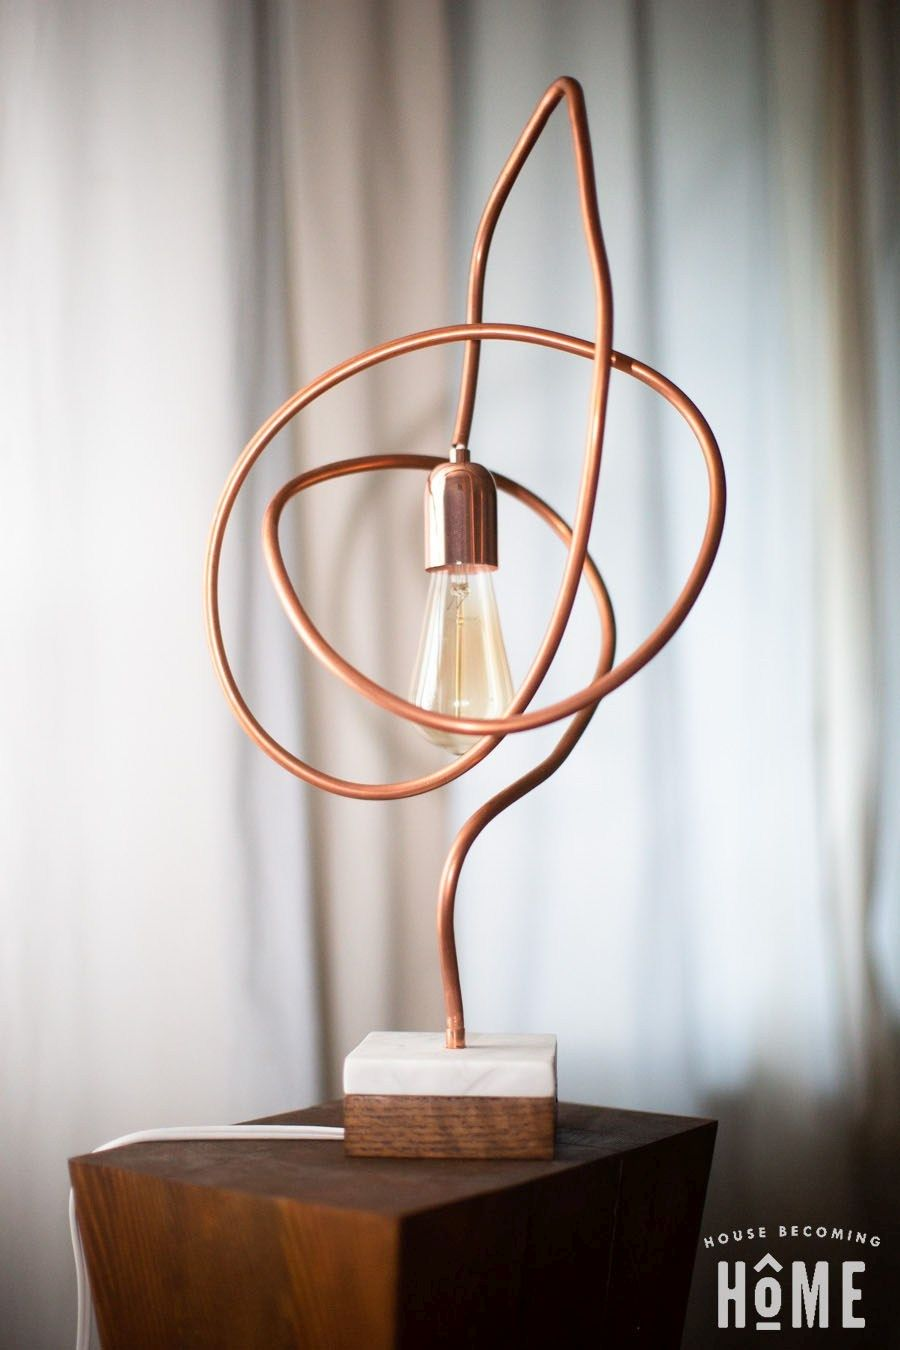 1568363285 419 diy copper pipe crafts that are fun and easy to do - DIY Copper Pipe Crafts That Are Fun And Easy To Do